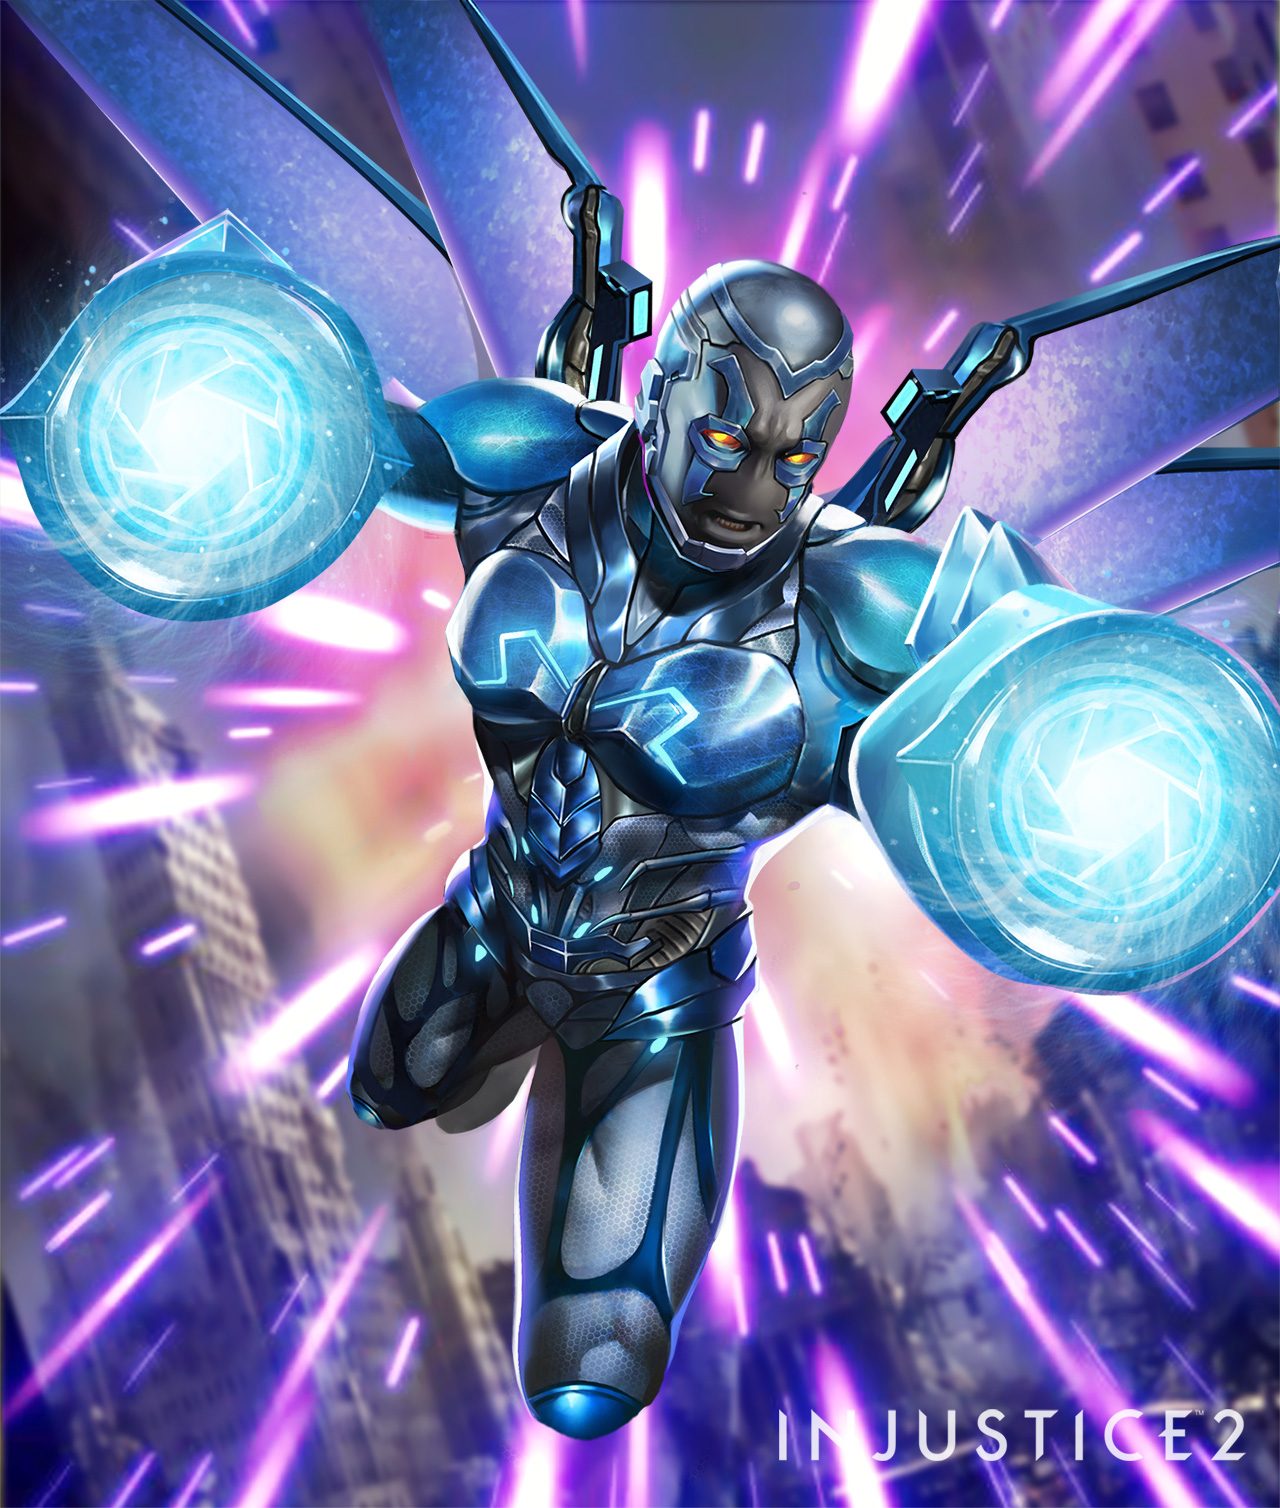 Injustice 2 Blue Beetle.jpg